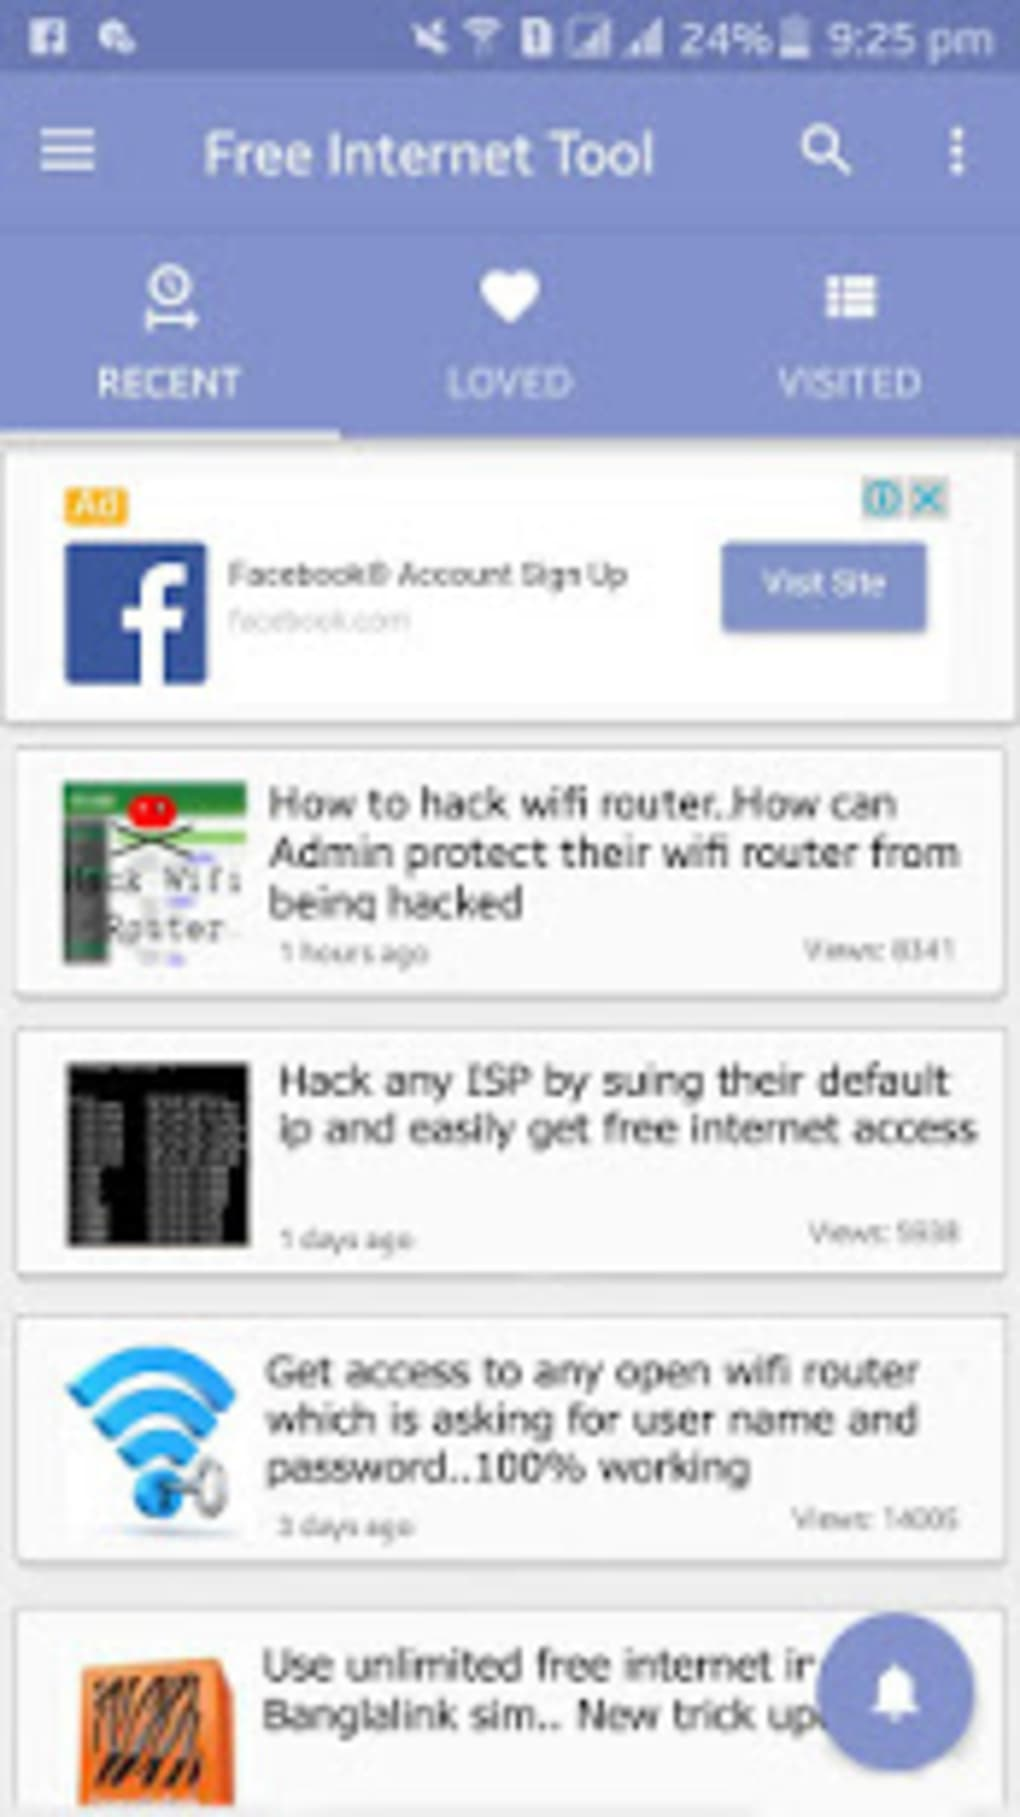 Free Internet Tool 2019 for Android - Download